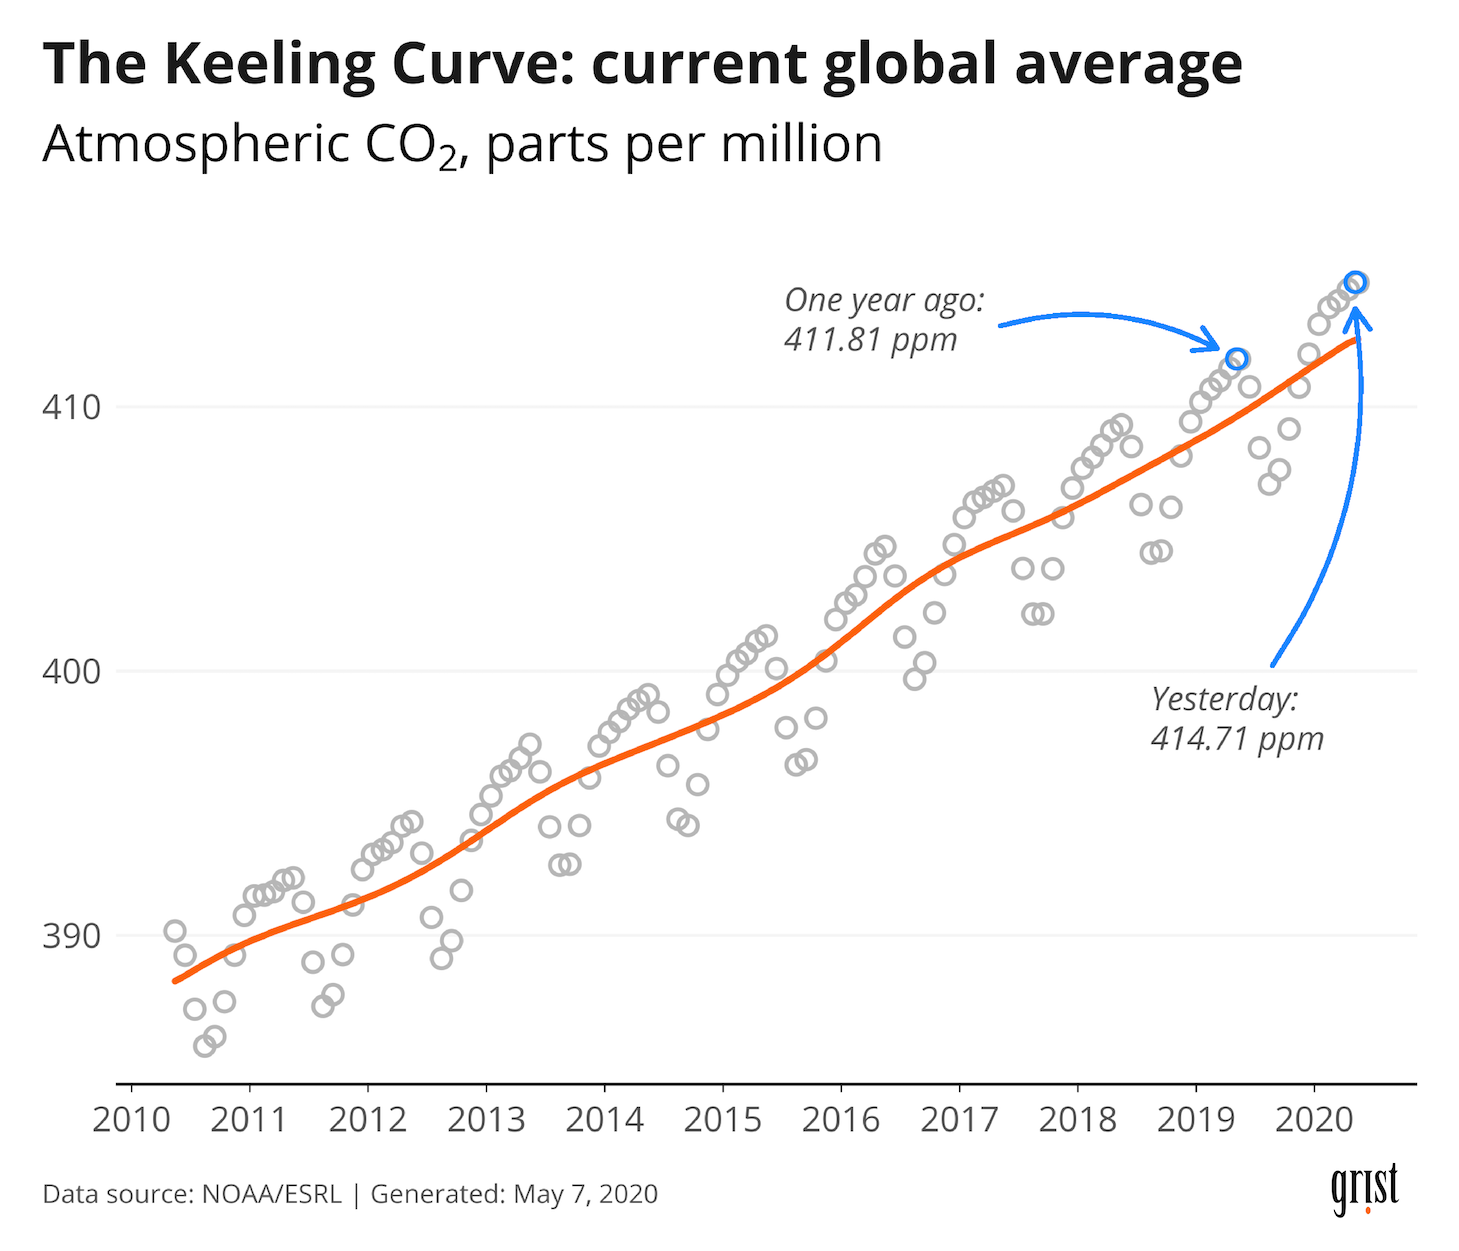 A chart showing increasing levels of atmospheric CO2 between 2010 and 2020. In May 2020, the concentration stood at 414 ppm.